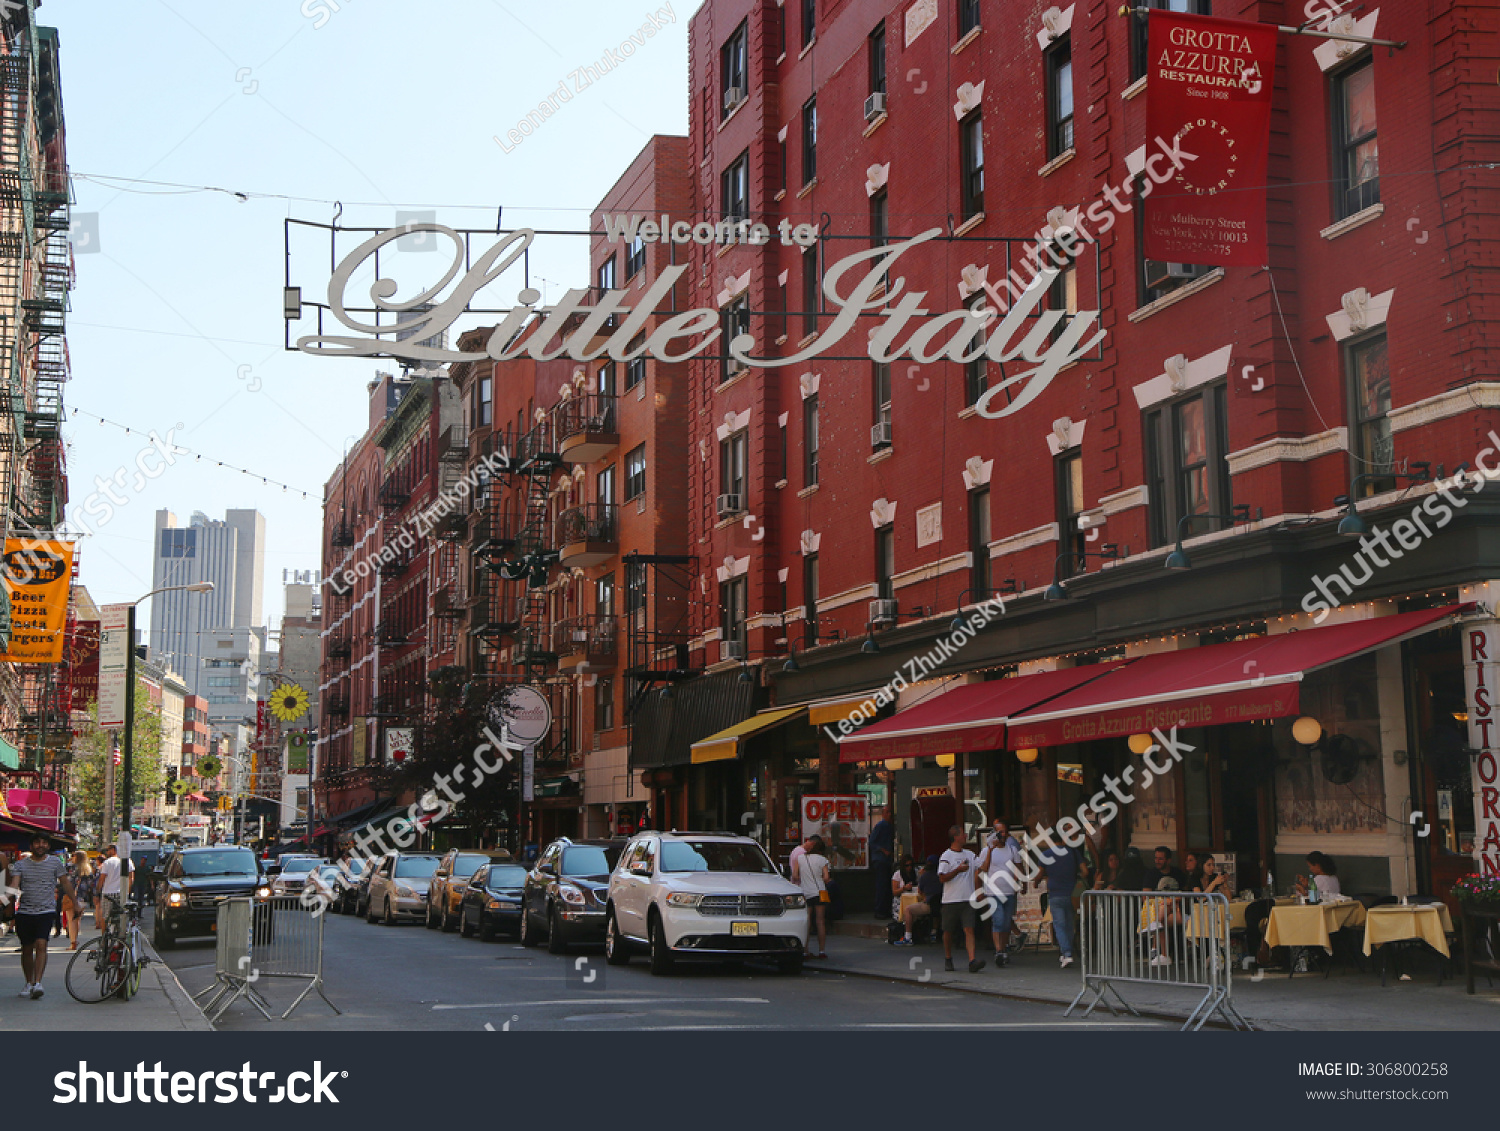 ... Italy sign in Lower Manhattan. Little Italy is an Italian community in